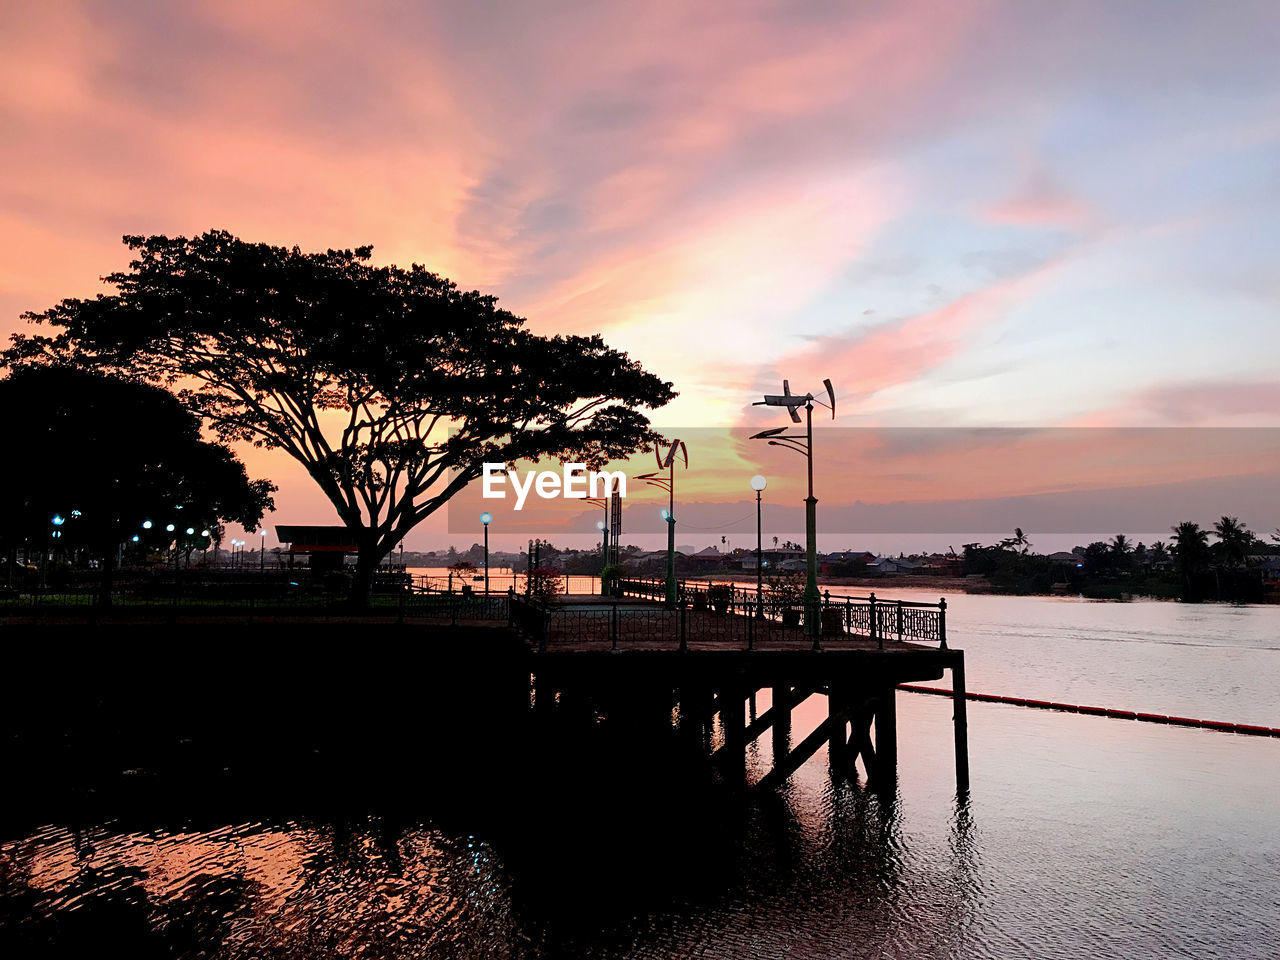 sunset, sky, water, tree, cloud - sky, plant, orange color, nature, architecture, built structure, silhouette, beauty in nature, waterfront, scenics - nature, no people, outdoors, reflection, lake